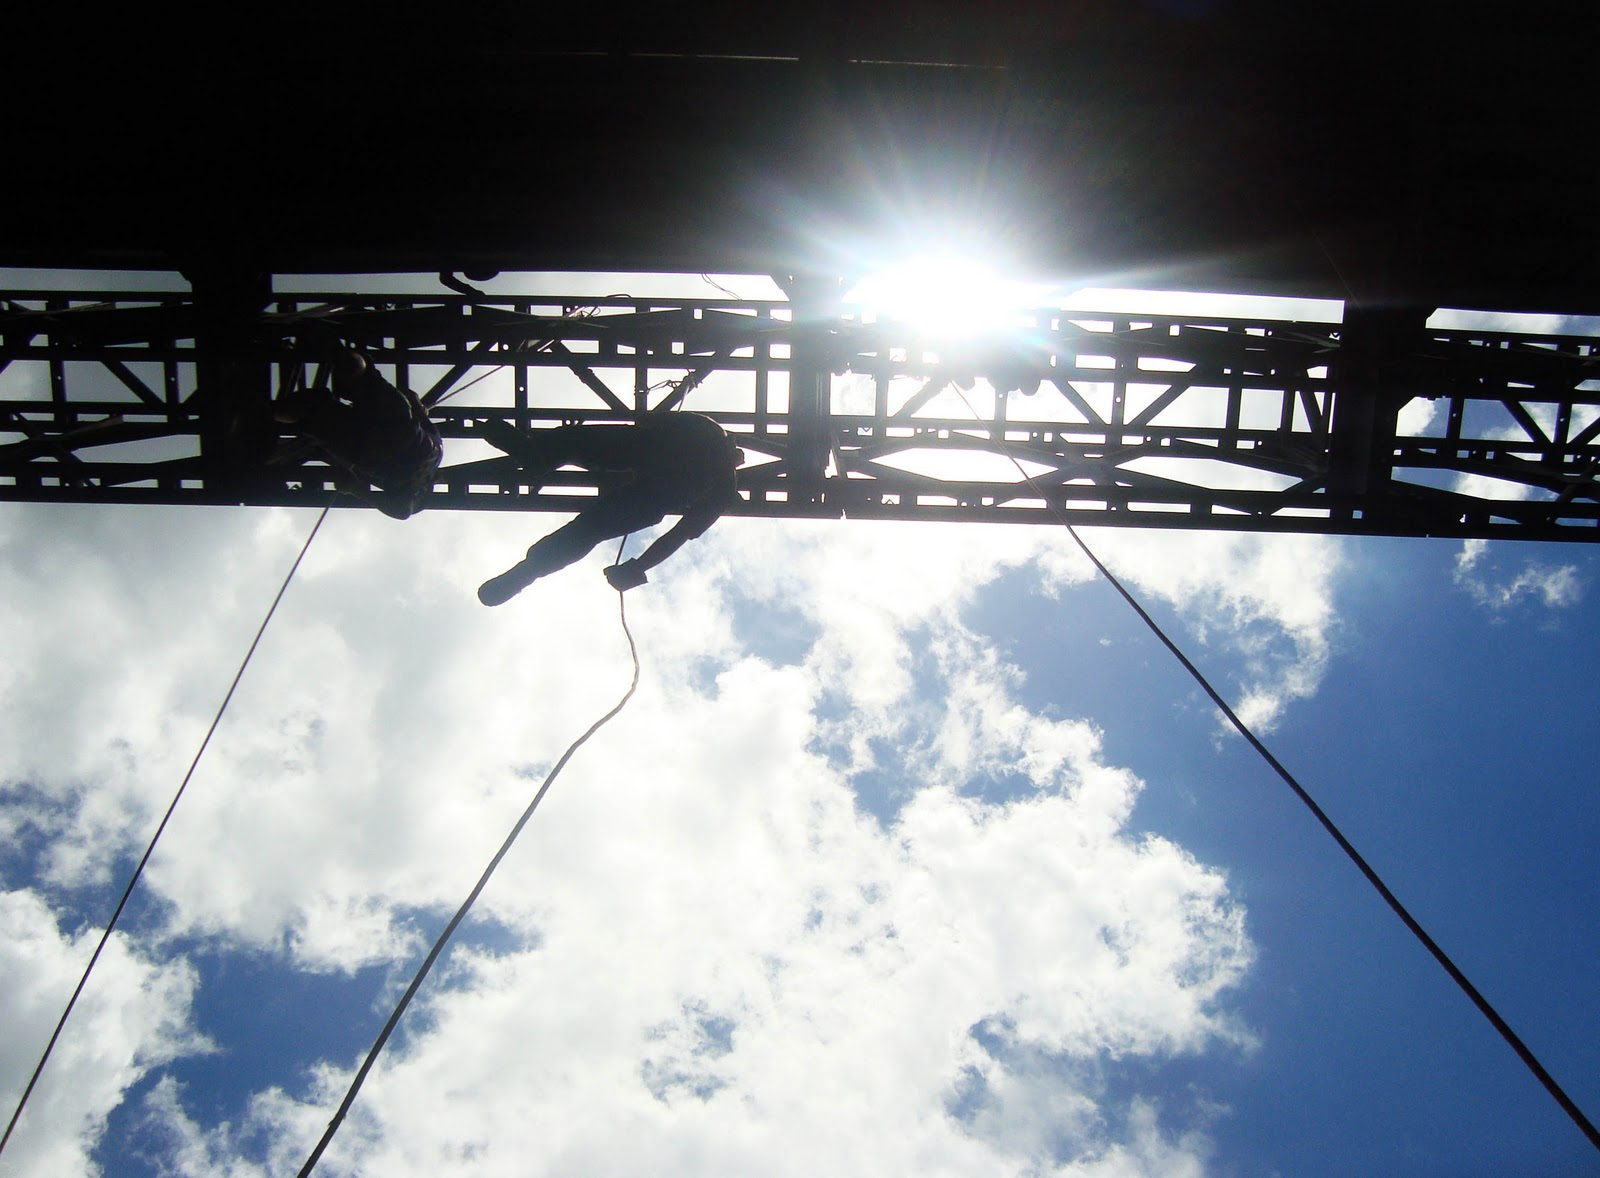 Campo 4 in Talisay City rappelling